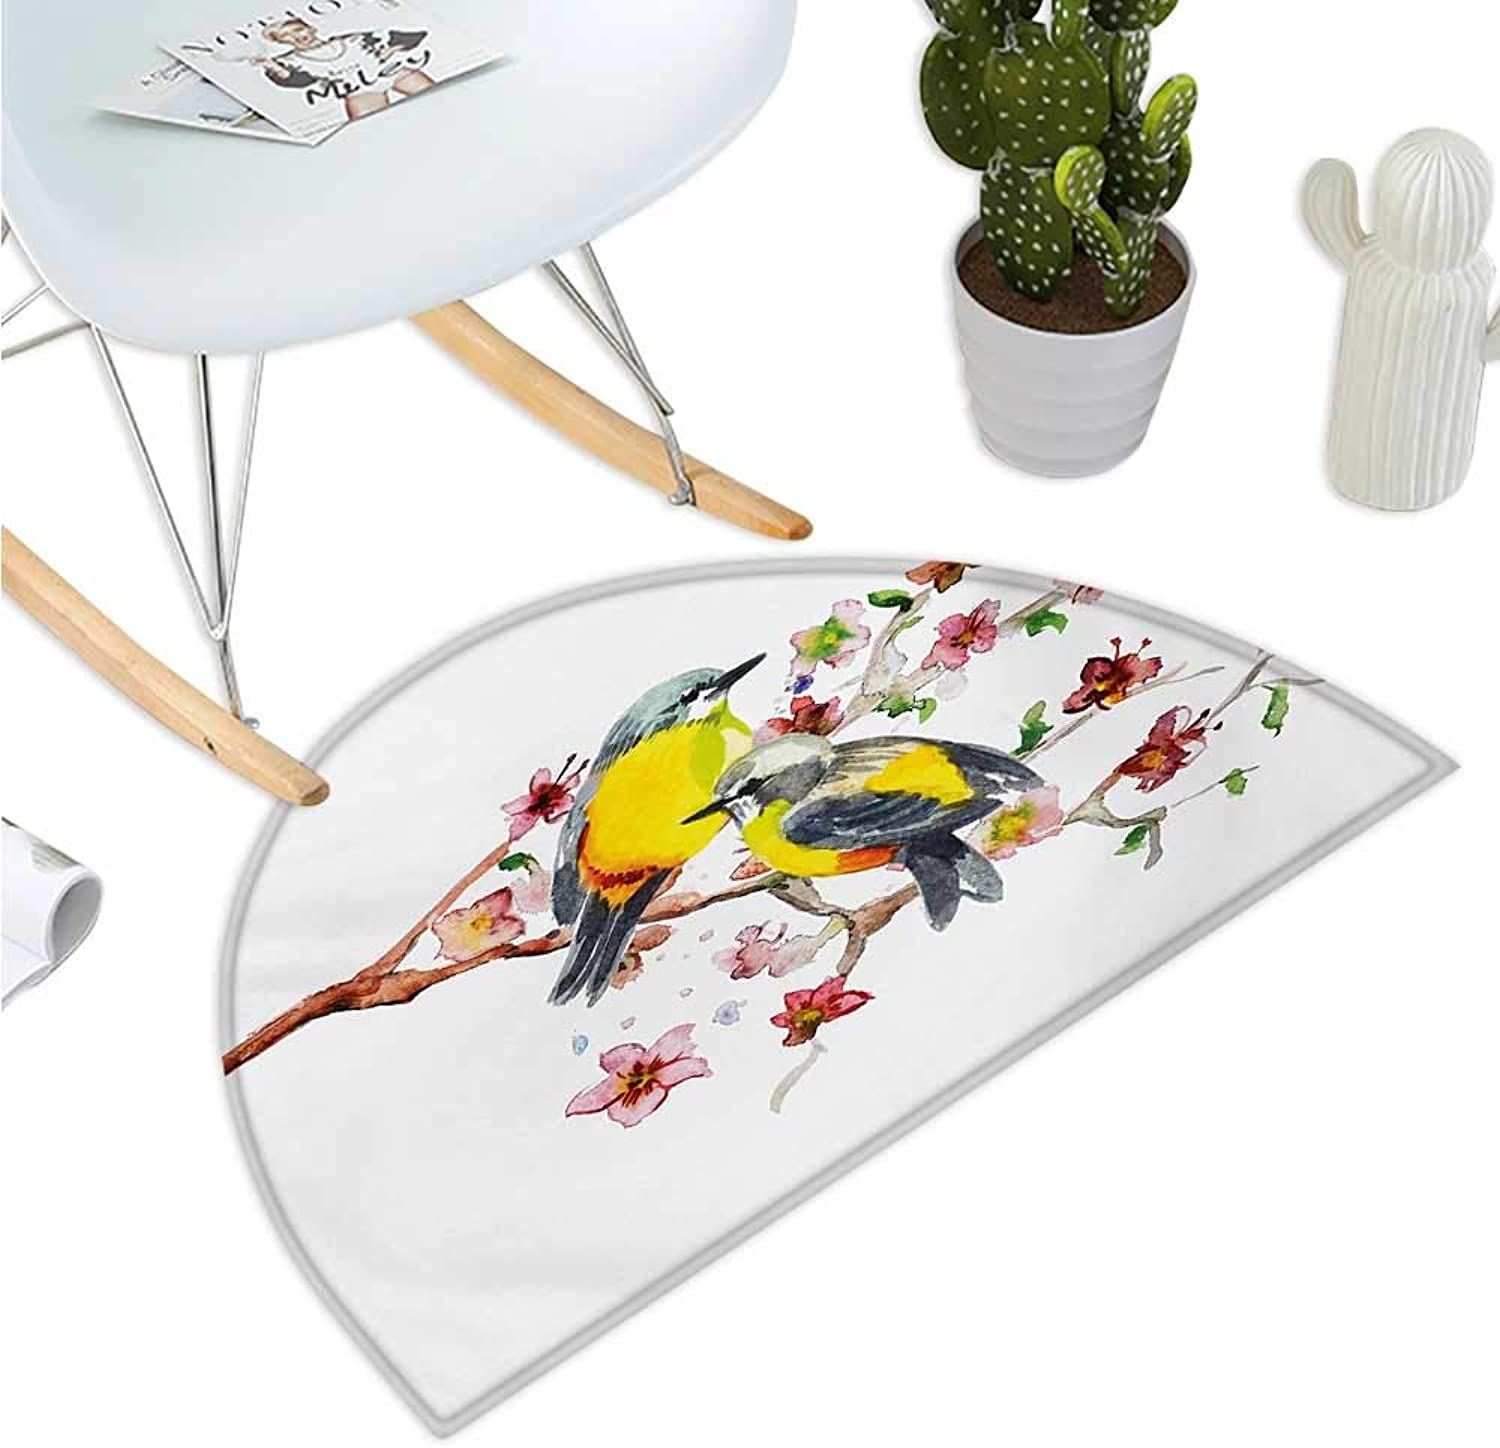 Nature Semicircle Doormat Watercolor Style Effect Drawing of Birds on The Branches and Flowers Print Halfmoon doormats H 23.6  xD 35.4  Brown and Yellow